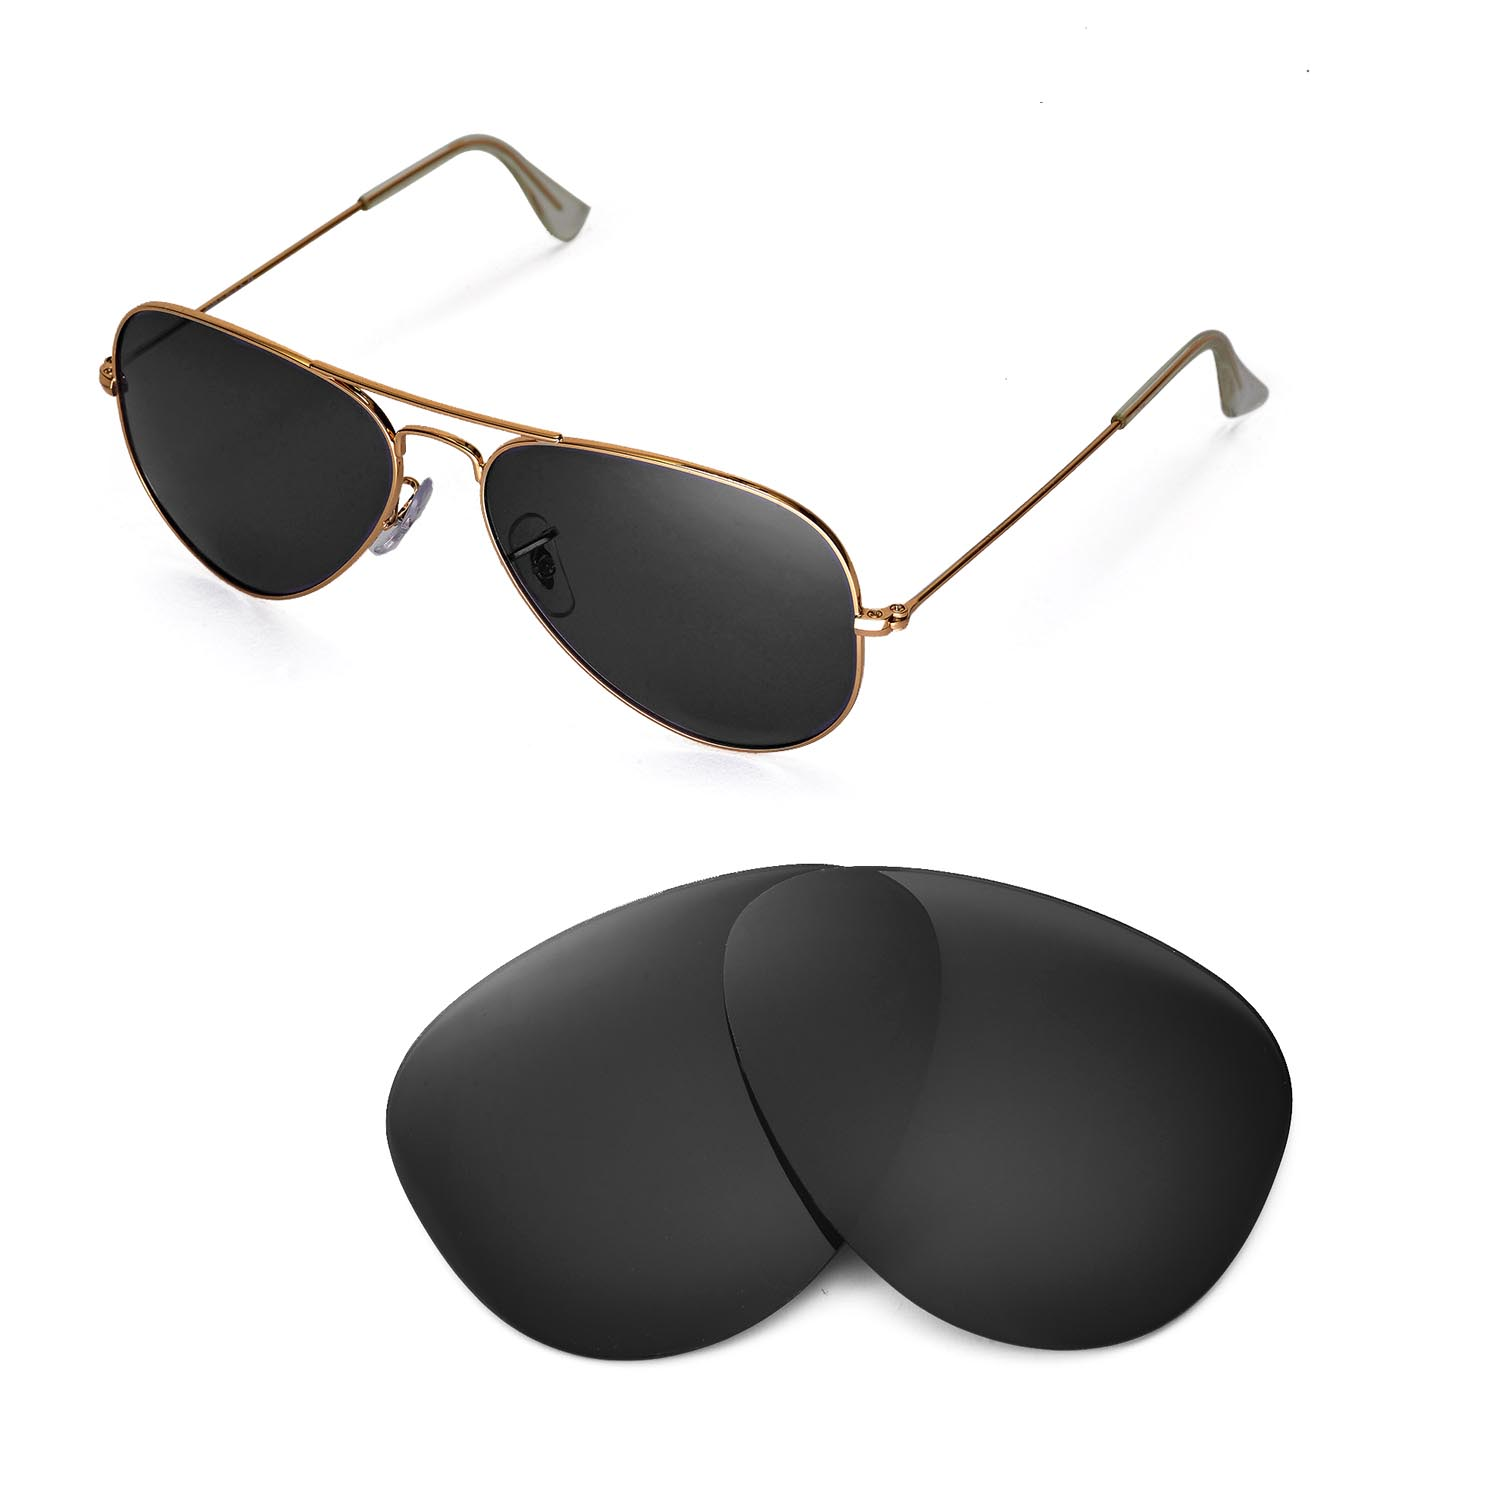 4312b01435 Details about New Walleva Polarized Black Lenses For Ray-Ban Aviator Large  Metal RB3025 58mm